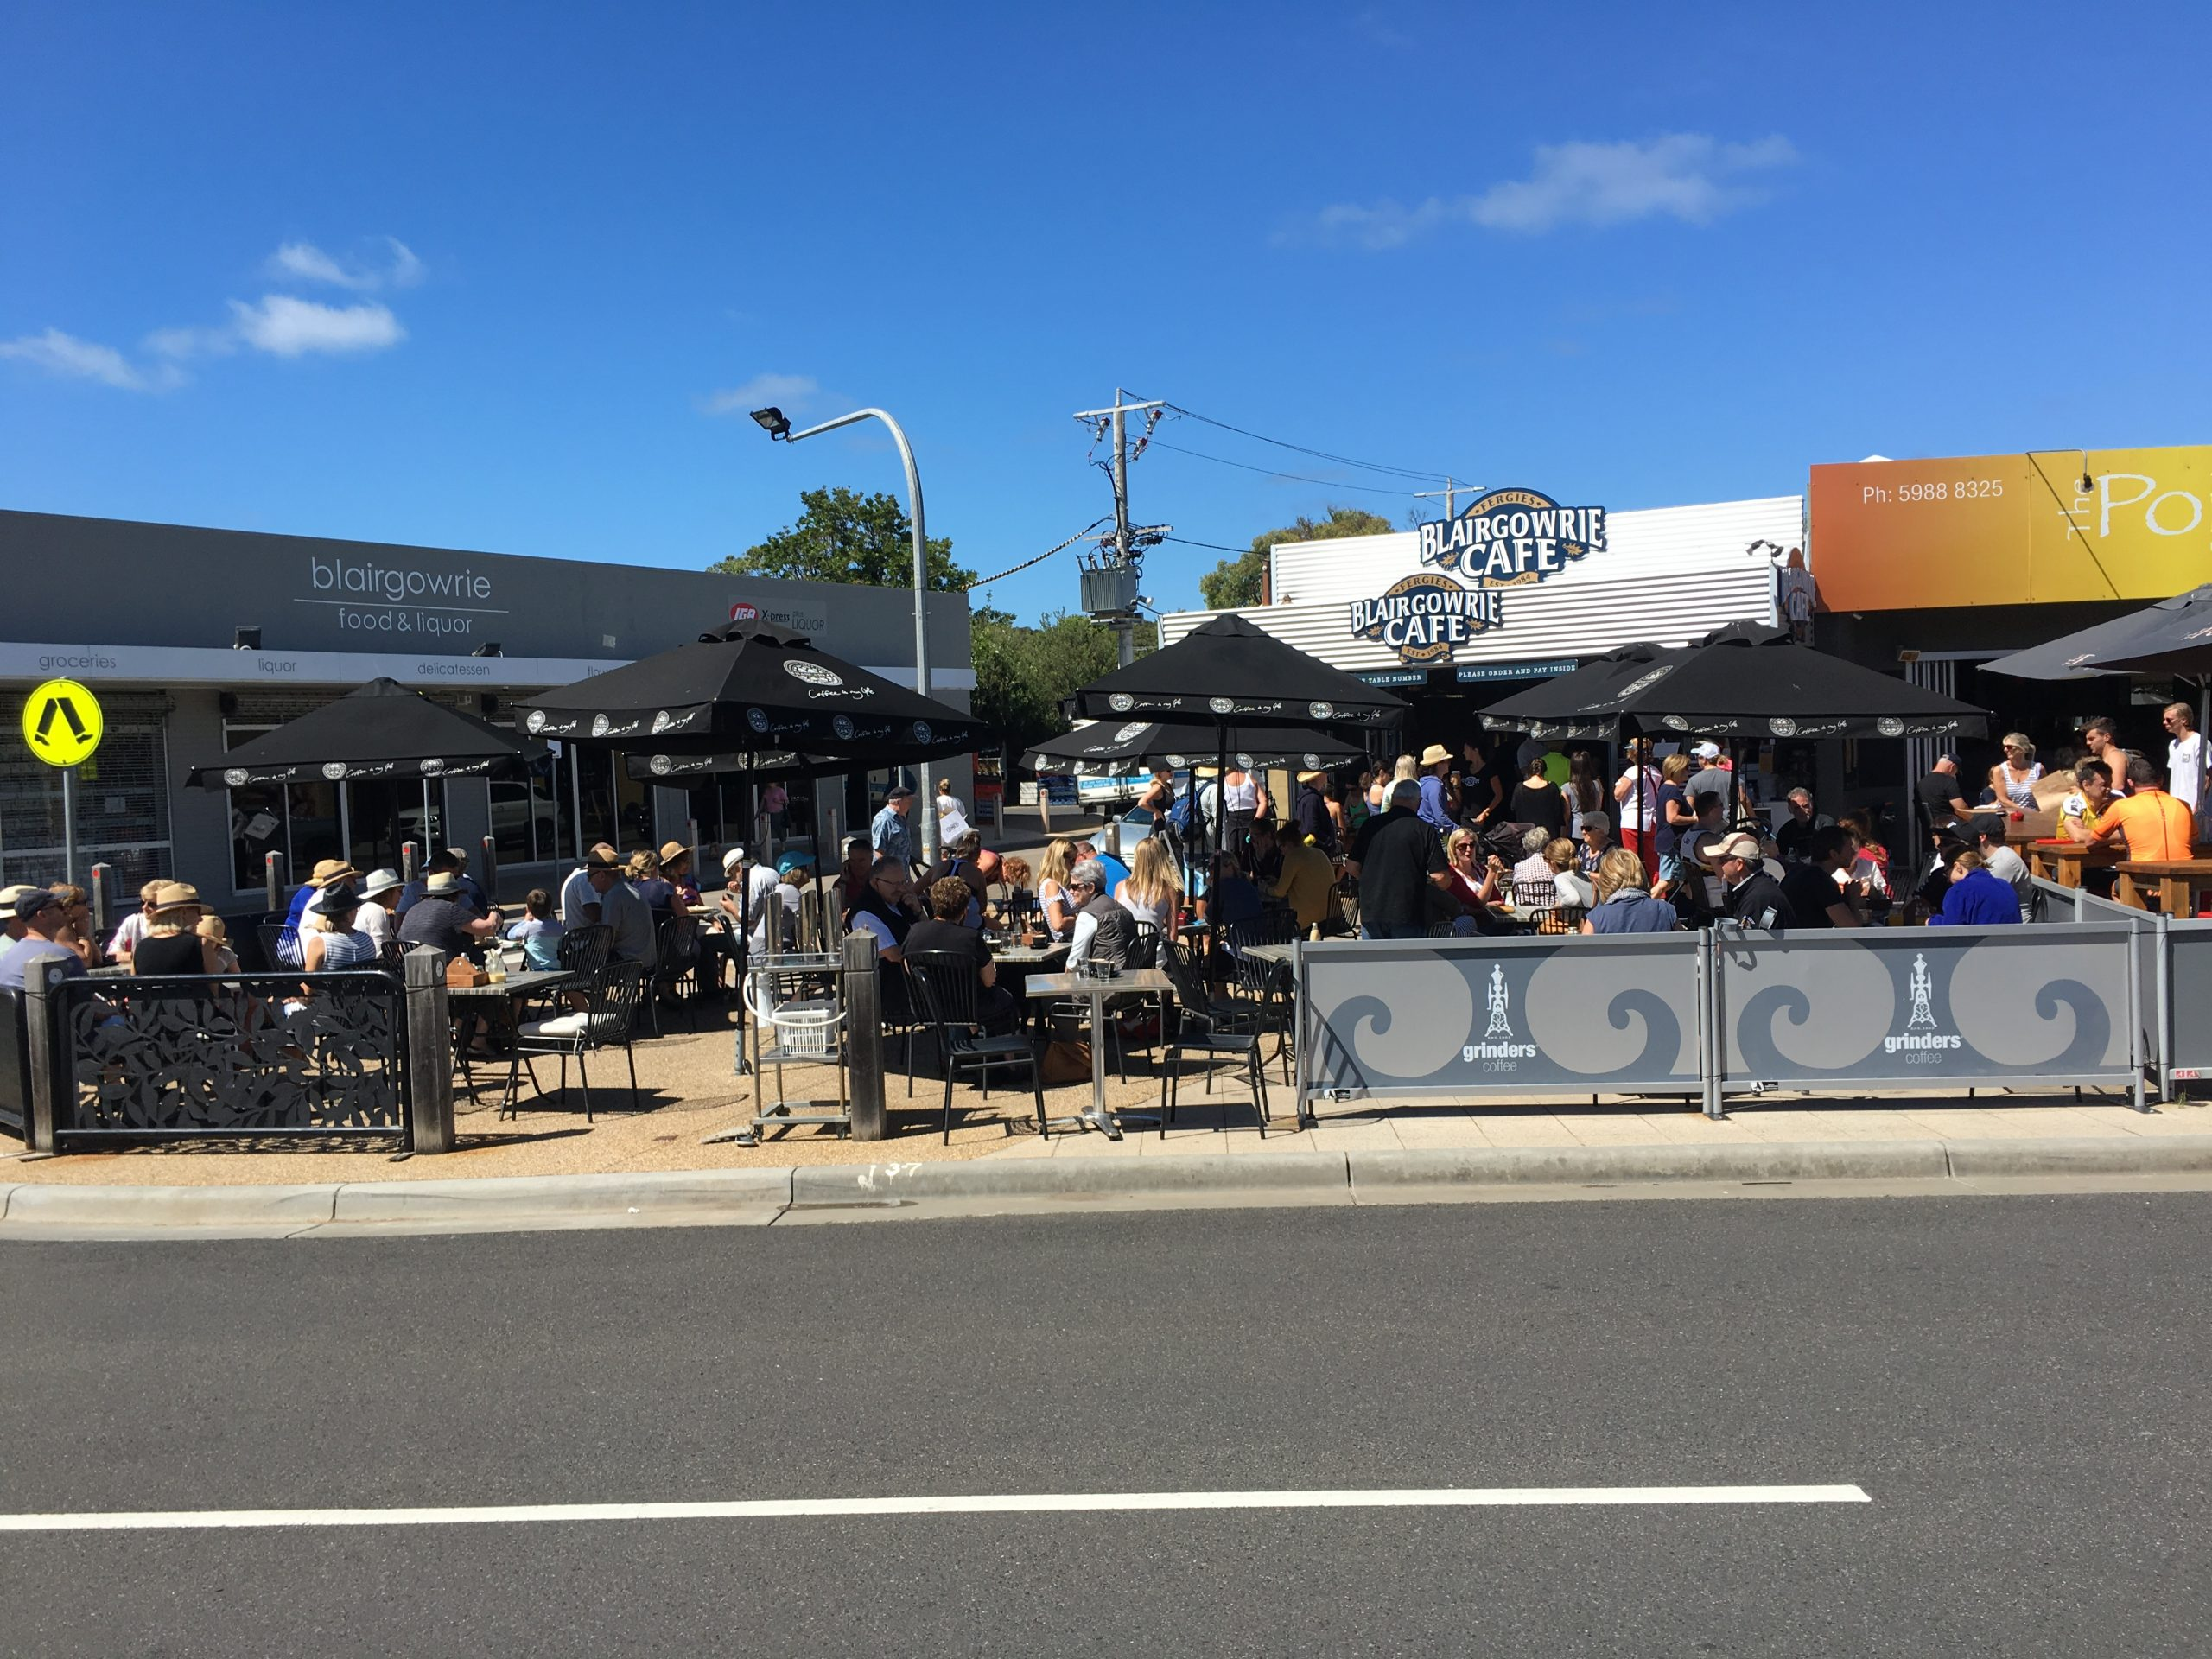 blairgowrie cafe outside